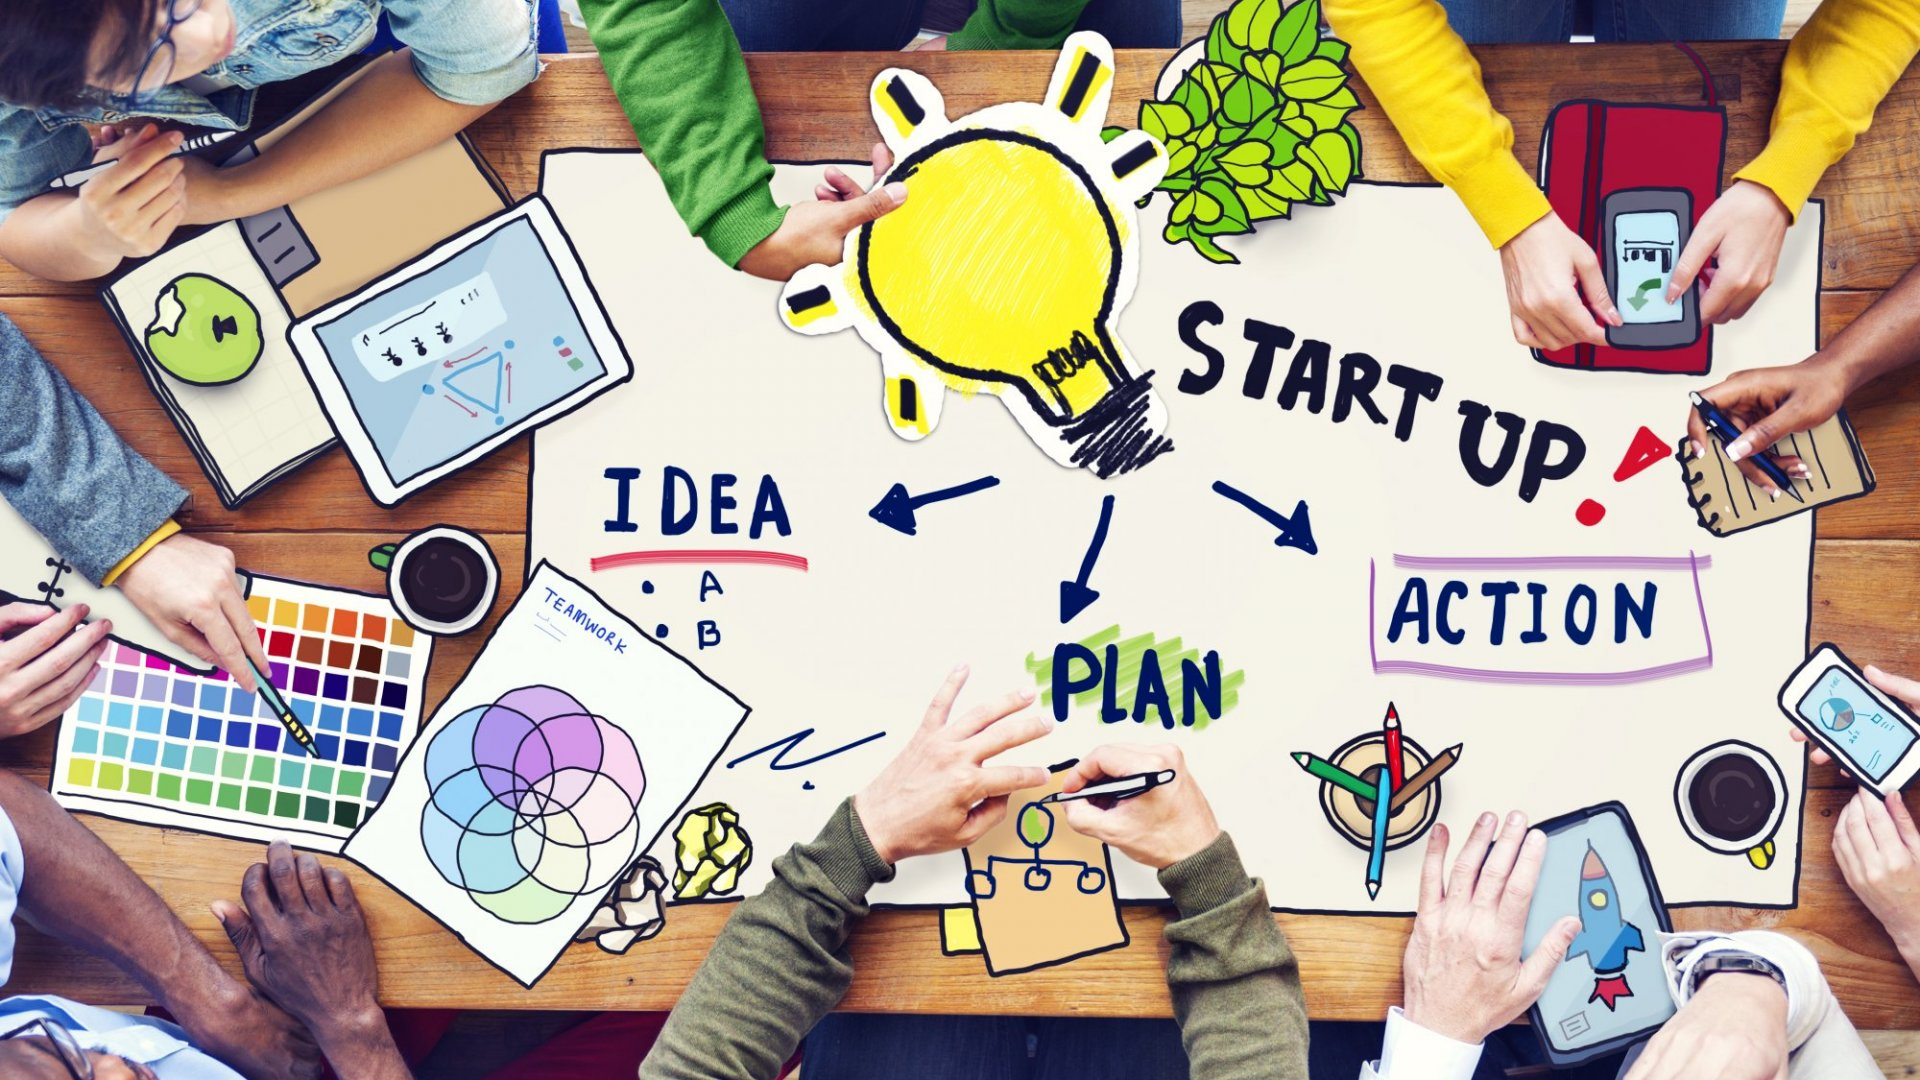 10 Things Most People Don't Know About Entrepreneurship